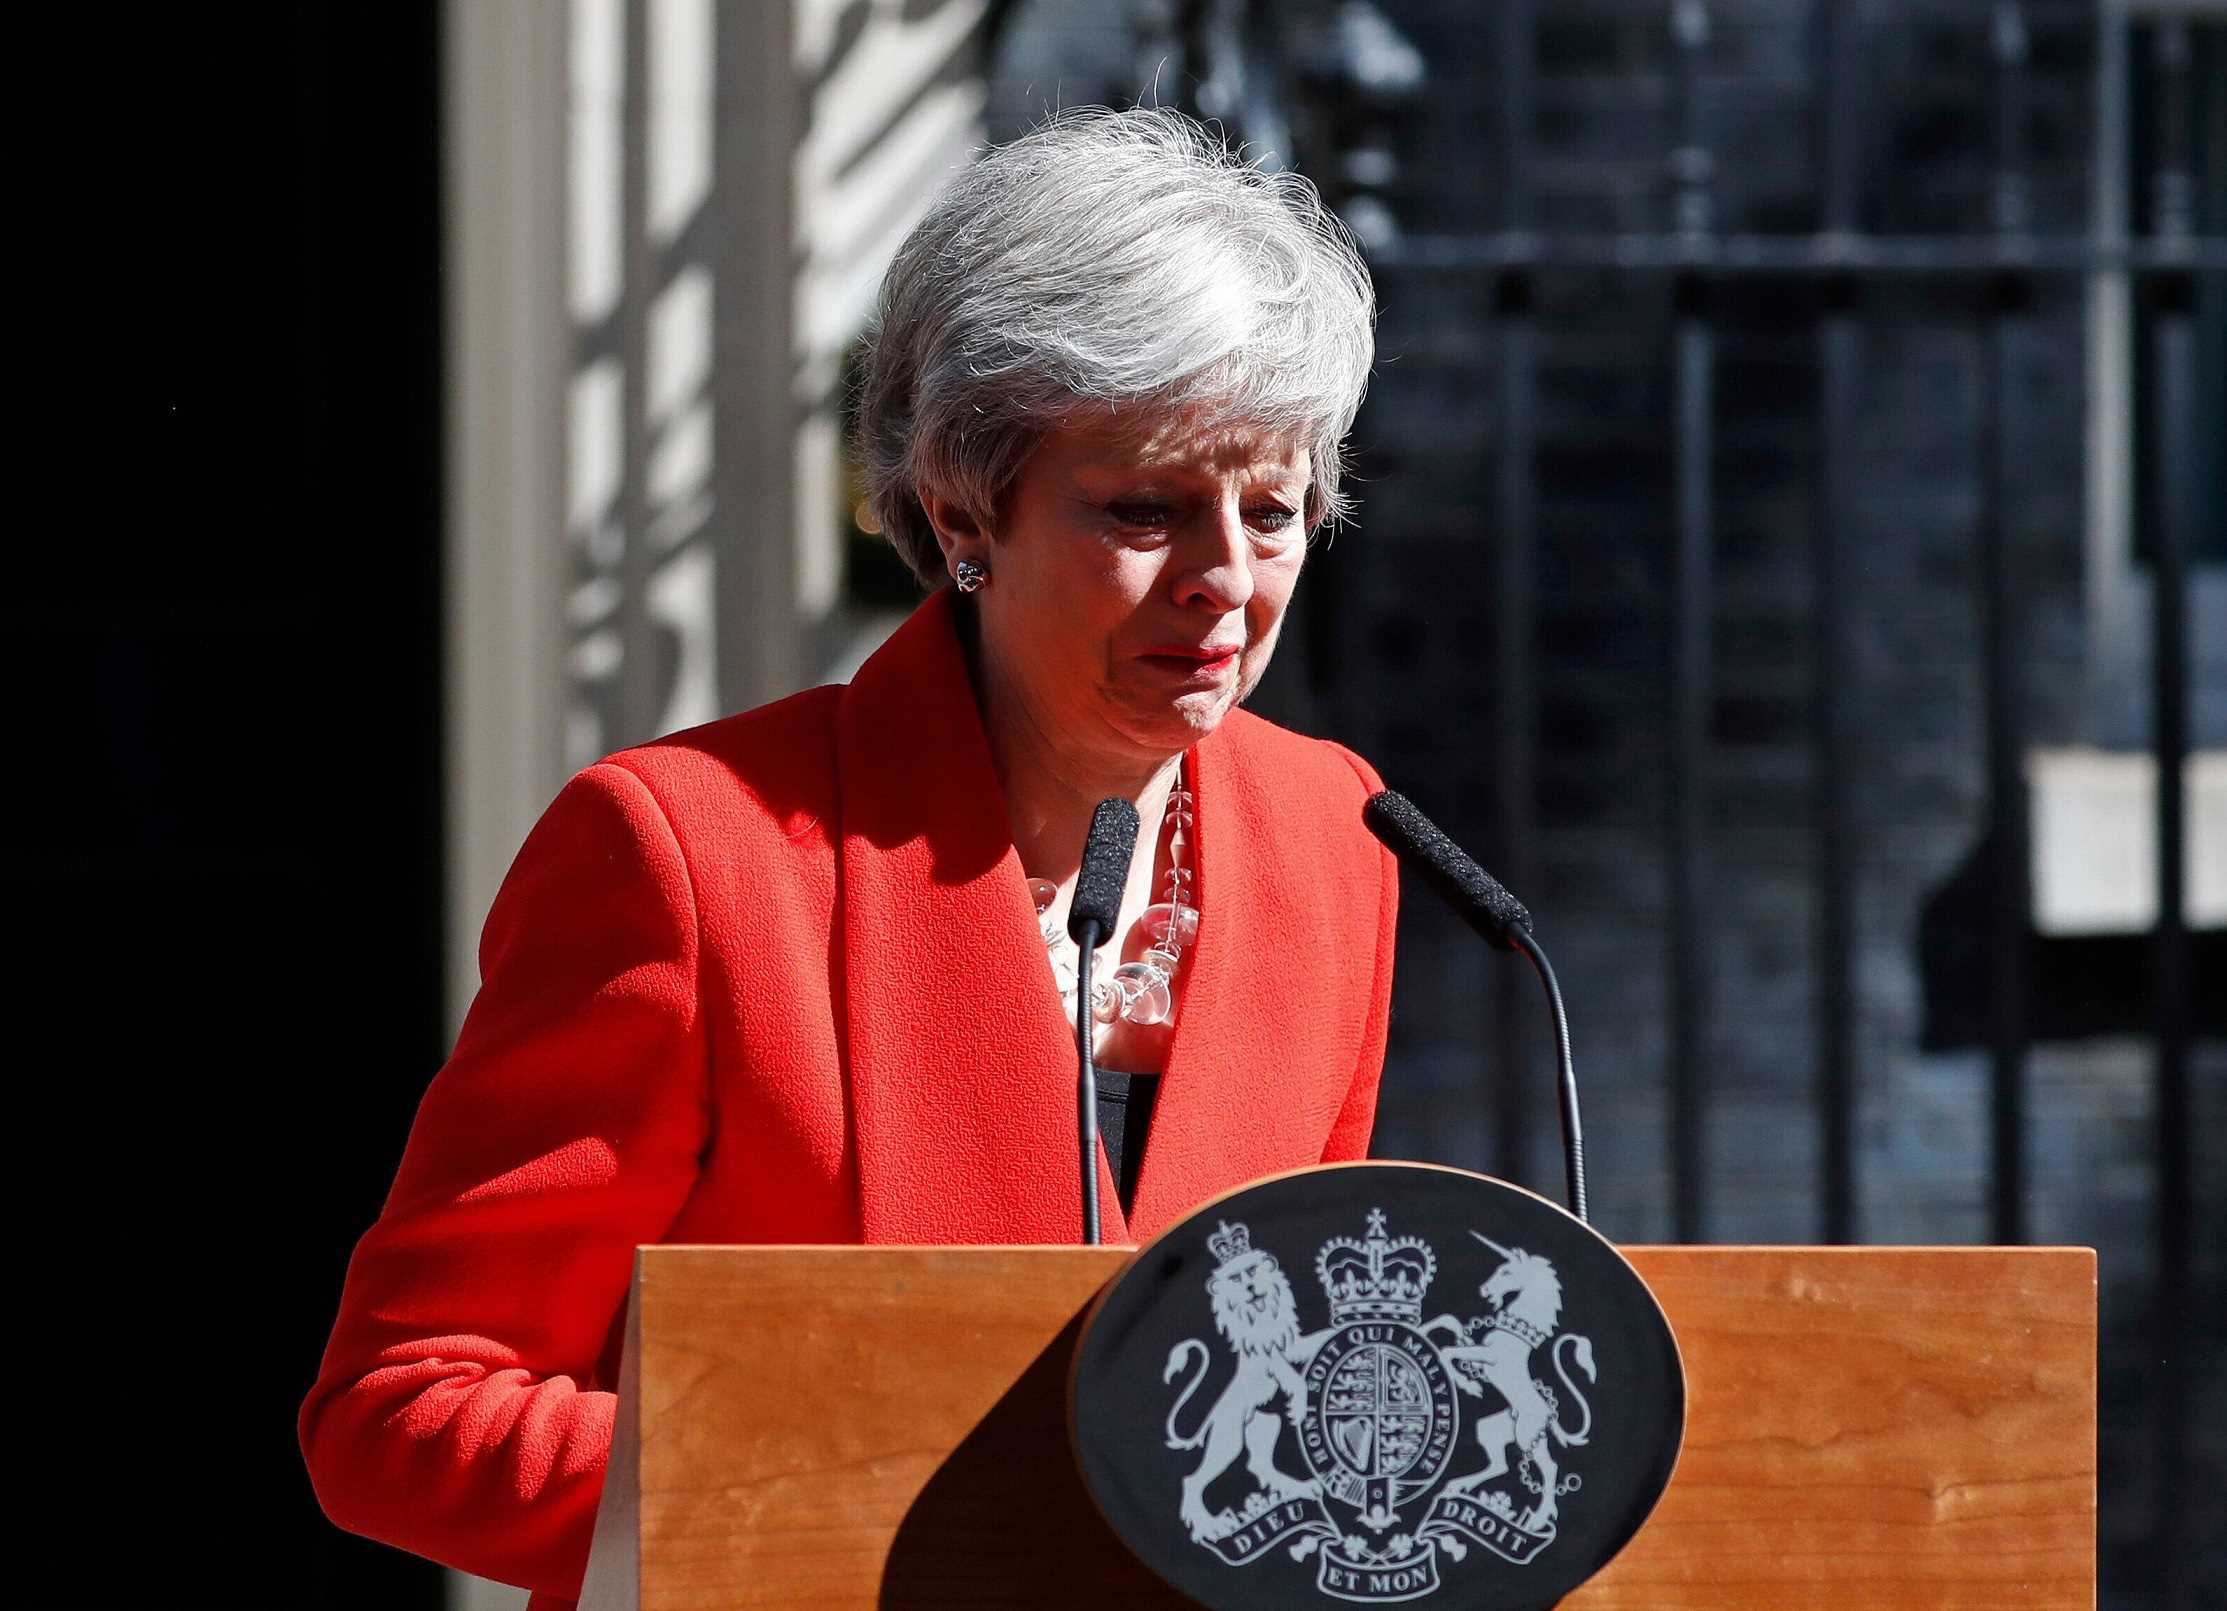 Theresa May announced resignation from her post recently. She was the Prime Minister of which country?